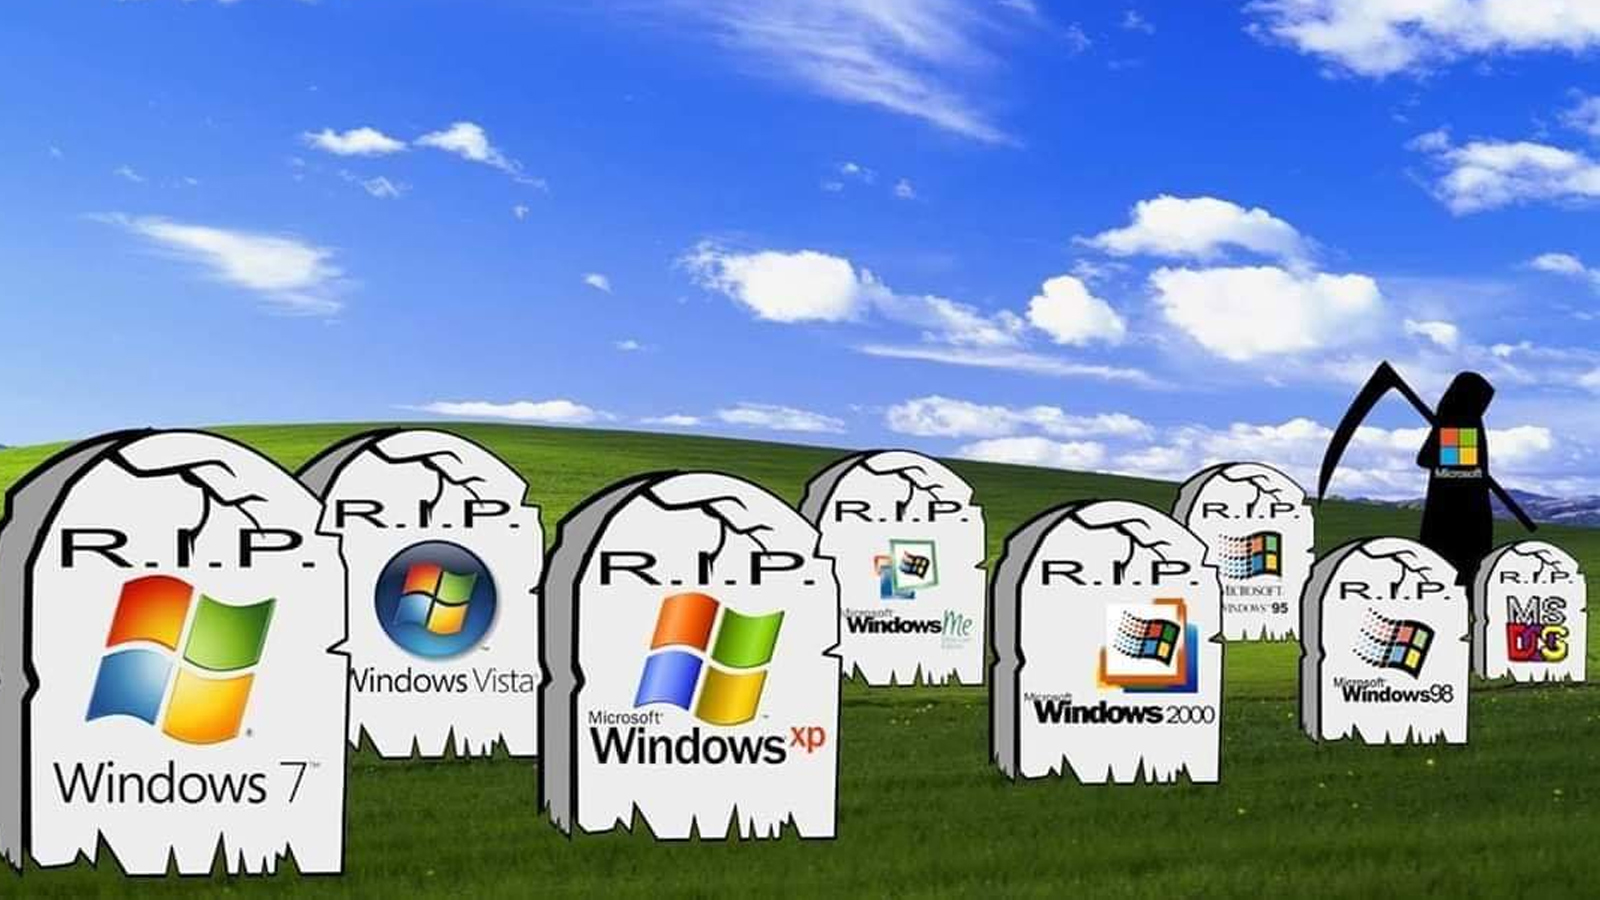 Estos son los divertidos memes del 'fin' de Windows 7. (Foto: Twitter)